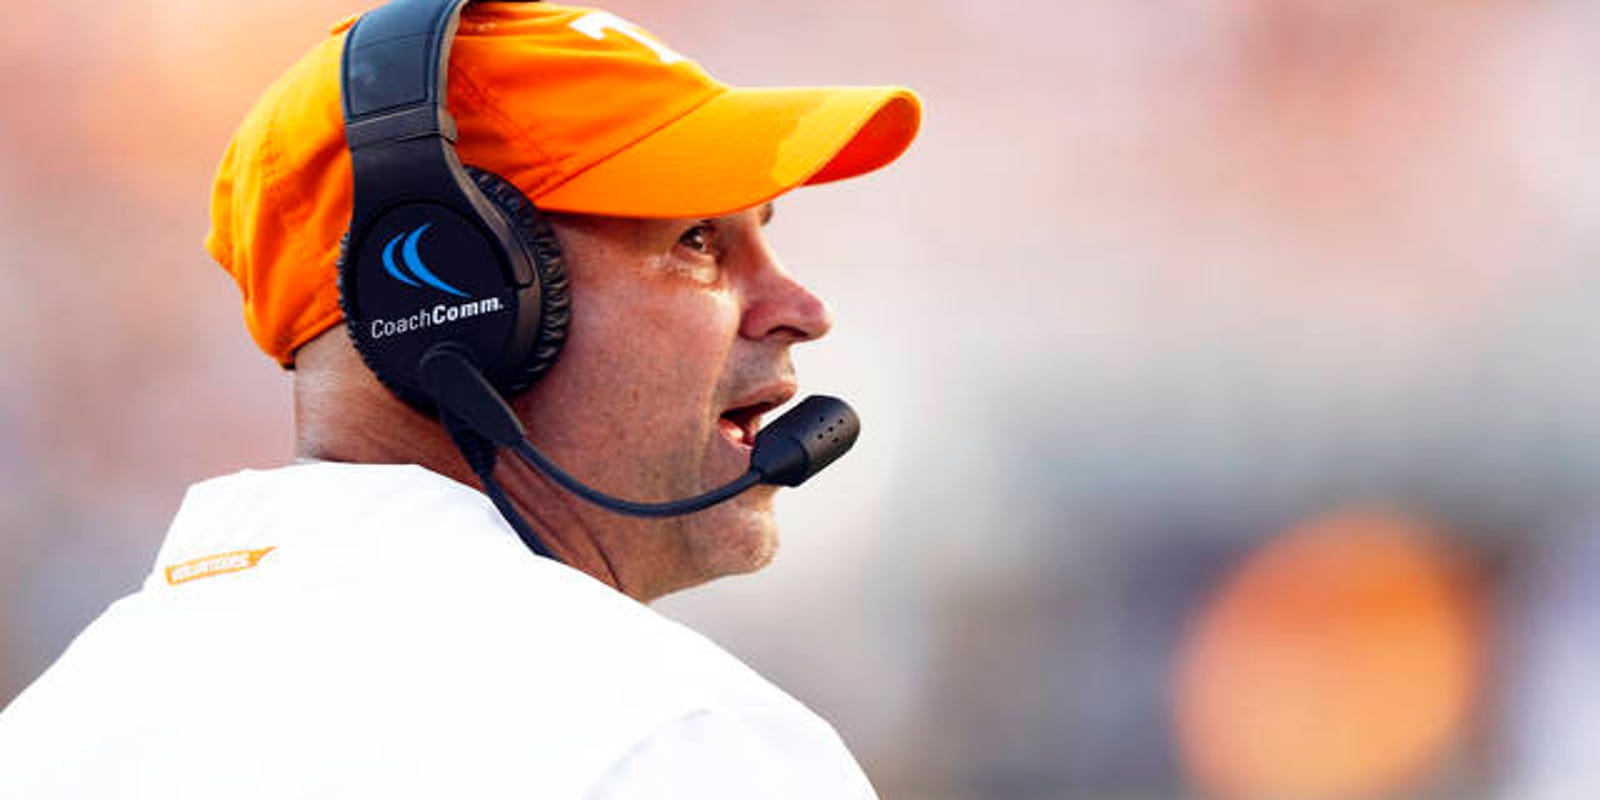 Tennessee football is gambling on where Jeremy Pruitt is headed, not where he is now | Estes